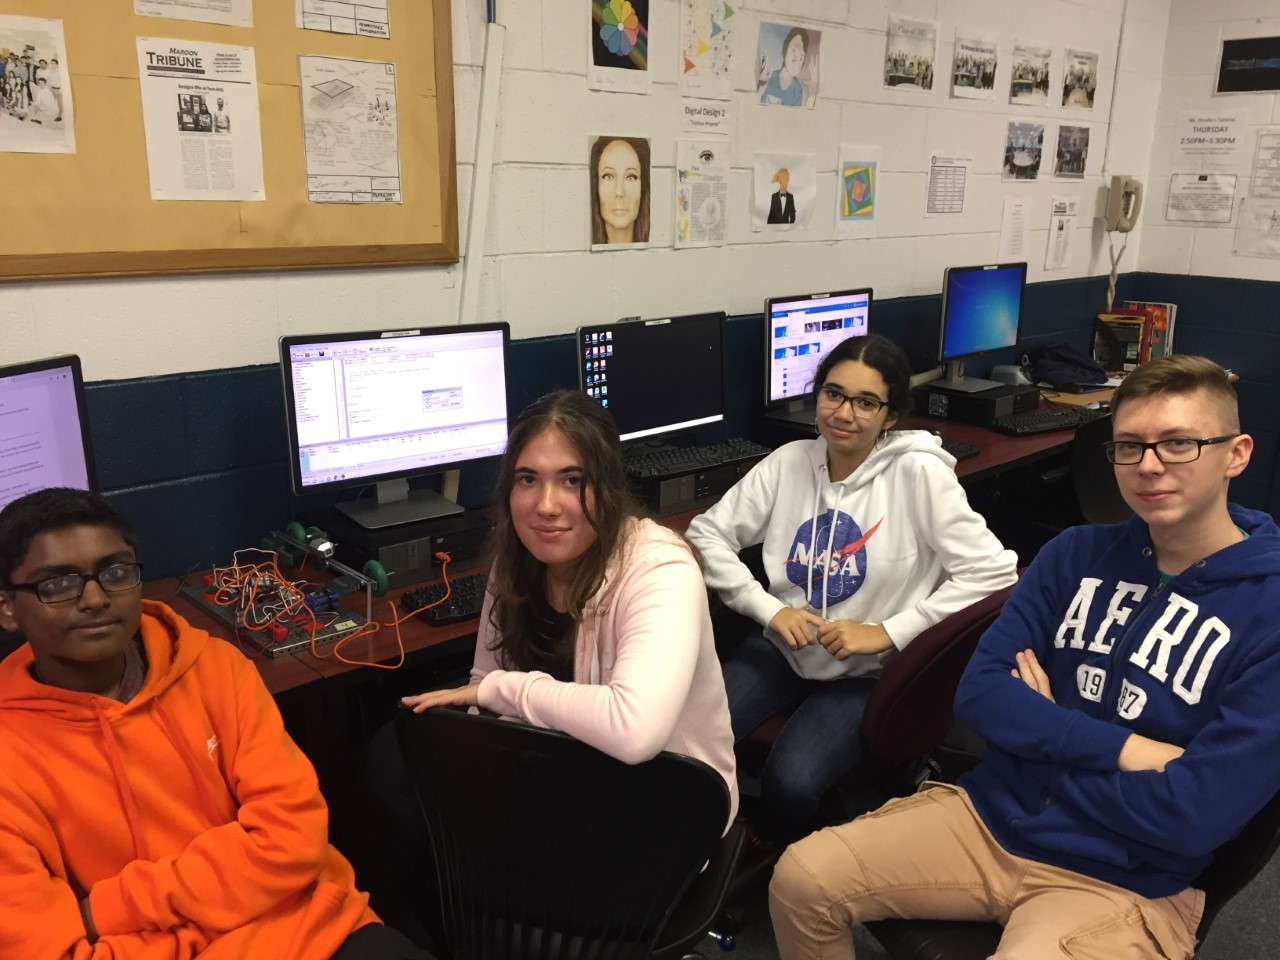 Students sitting at computers